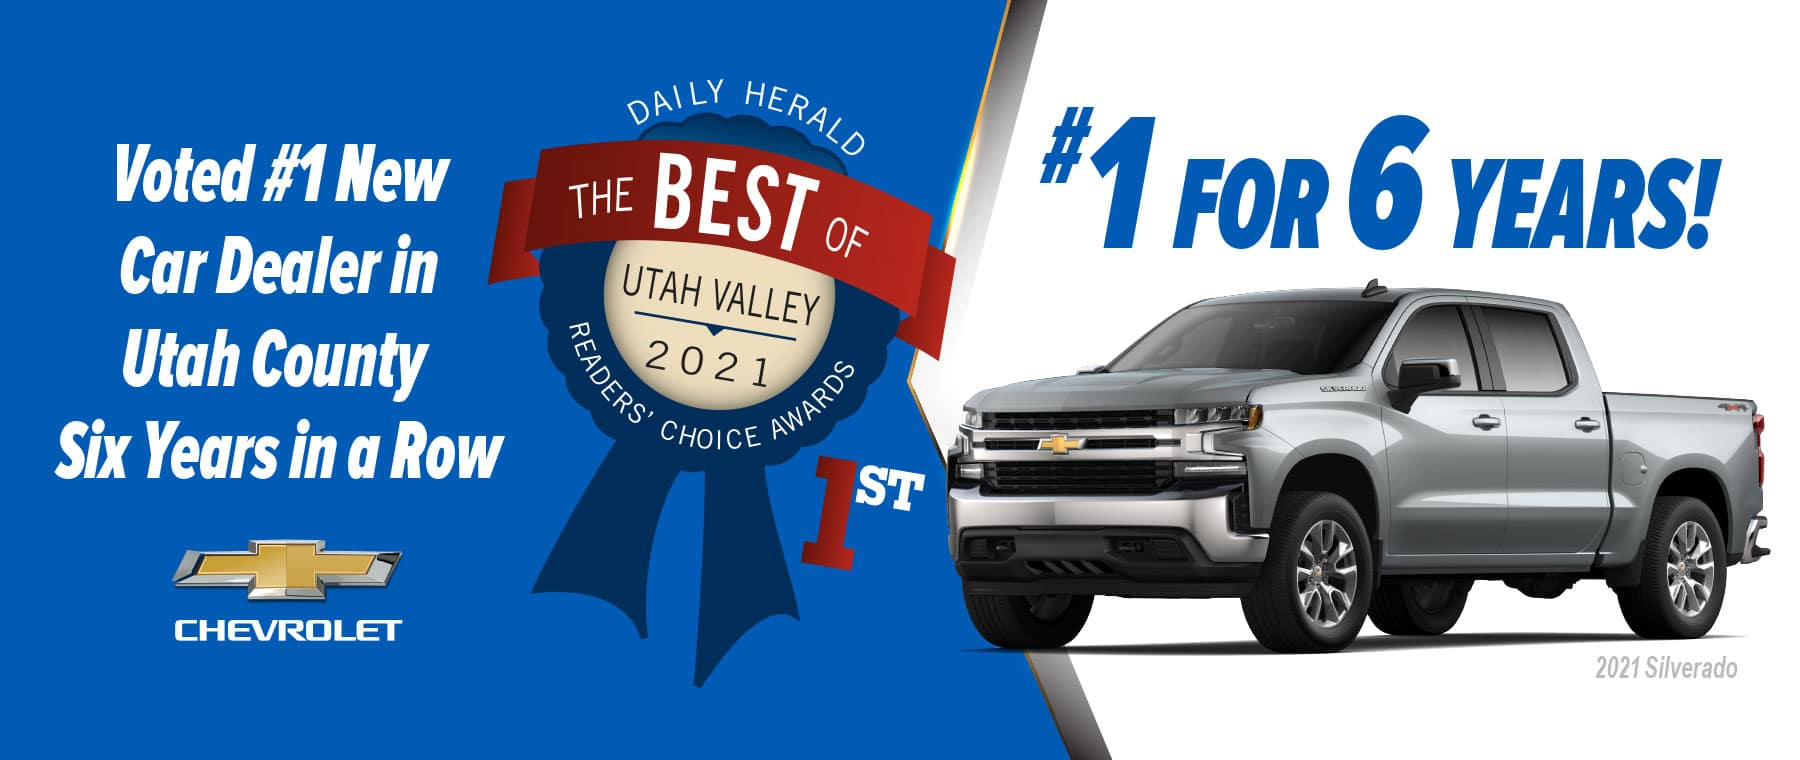 Doug Smith Chevrolet Voted Best of Utah County for 6 Years